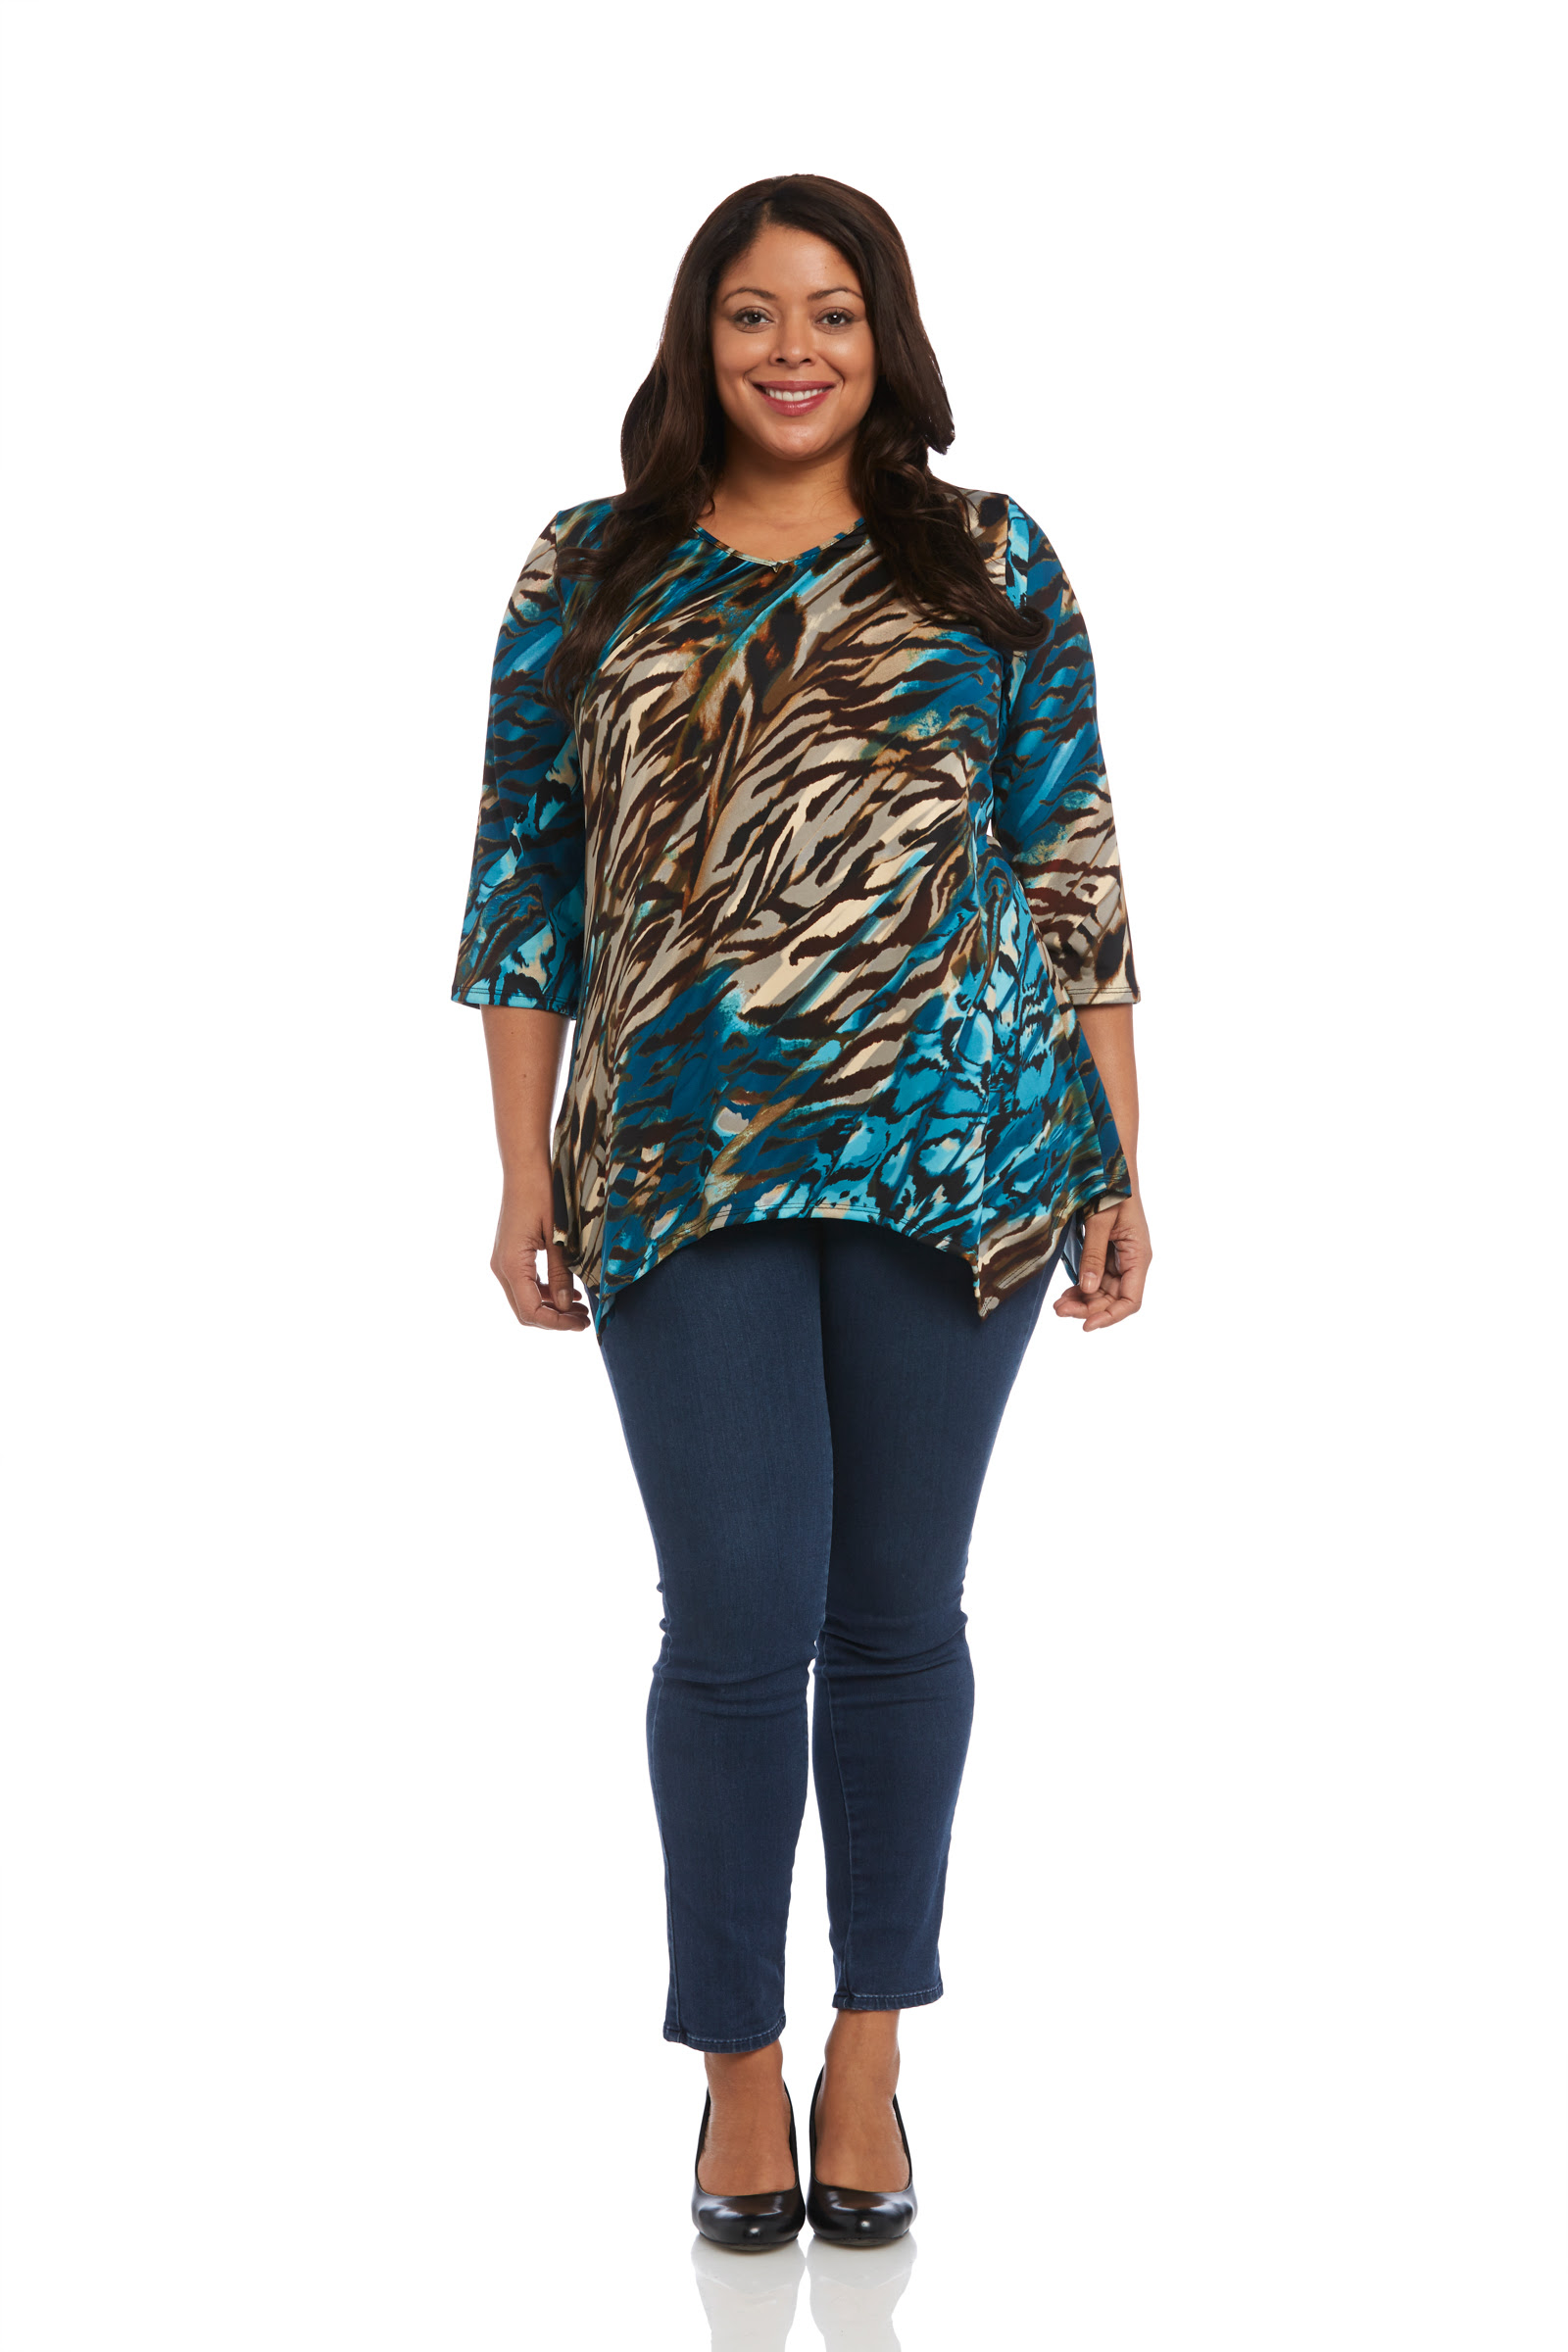 wholesale women's plus size clothing supplier